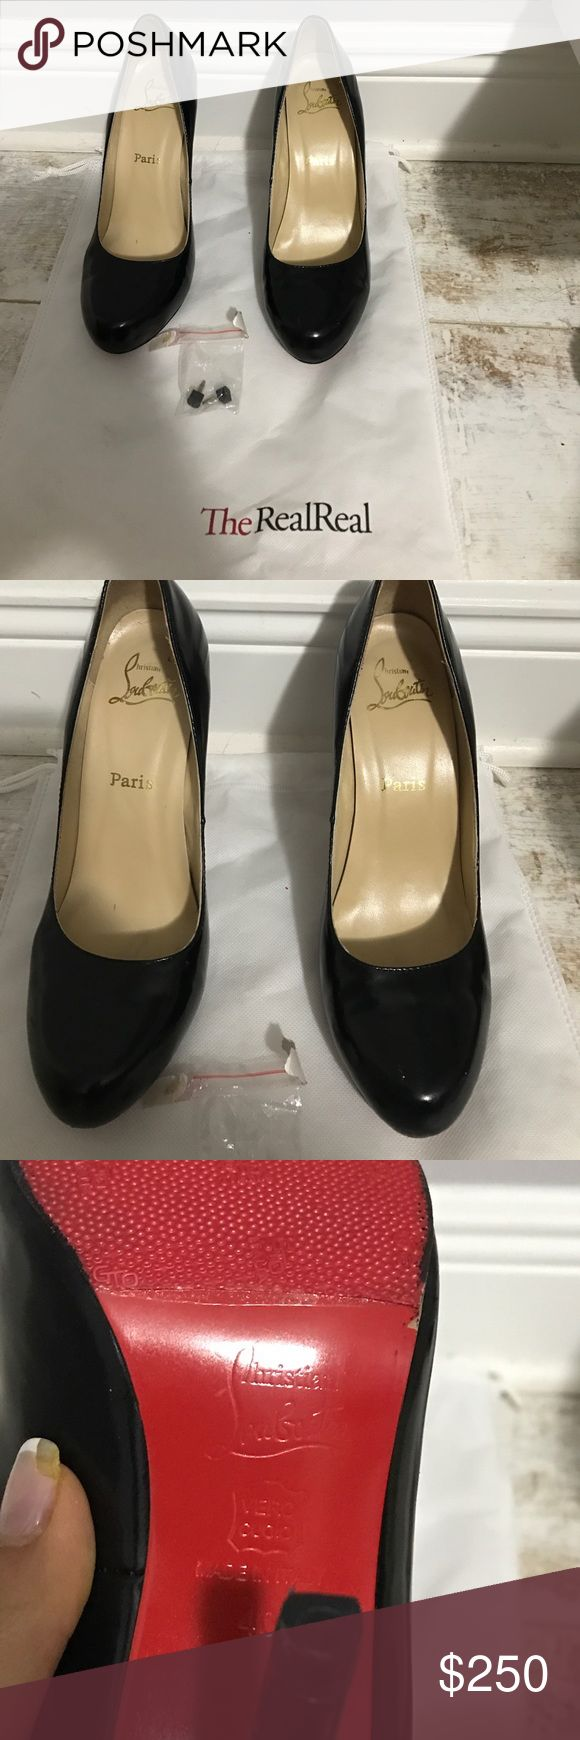 Christian Louboutin Rolando Black Patent Heels 40 Christian Louboutin Rolando Black Patent Heels 40. Soles were resoled with red non slip to preserve the red bottoms. Also had heel covers put on to protect the heels and patent leather. Comes with dust bag, and a set of heel tips. Firm on price. Christian Louboutin Shoes Heels